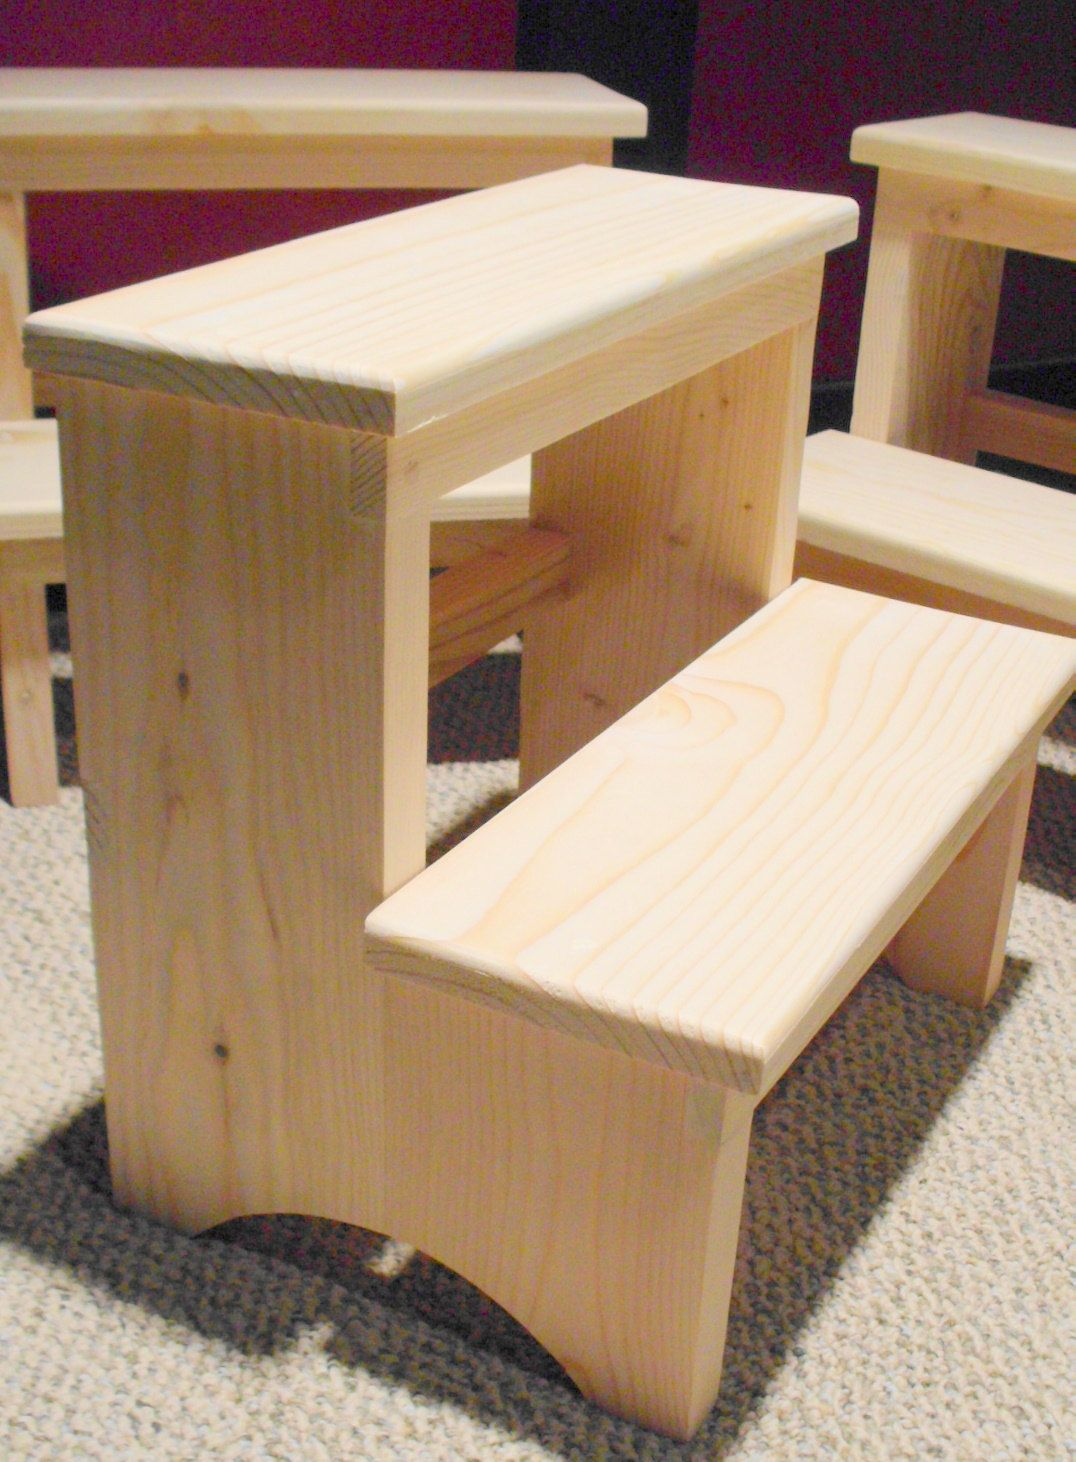 Handcrafted Shaker Inspired Pine Step Stool Unfinished 20 00 Via Etsy Step Stool Wooden Step Stool Wooden Projects